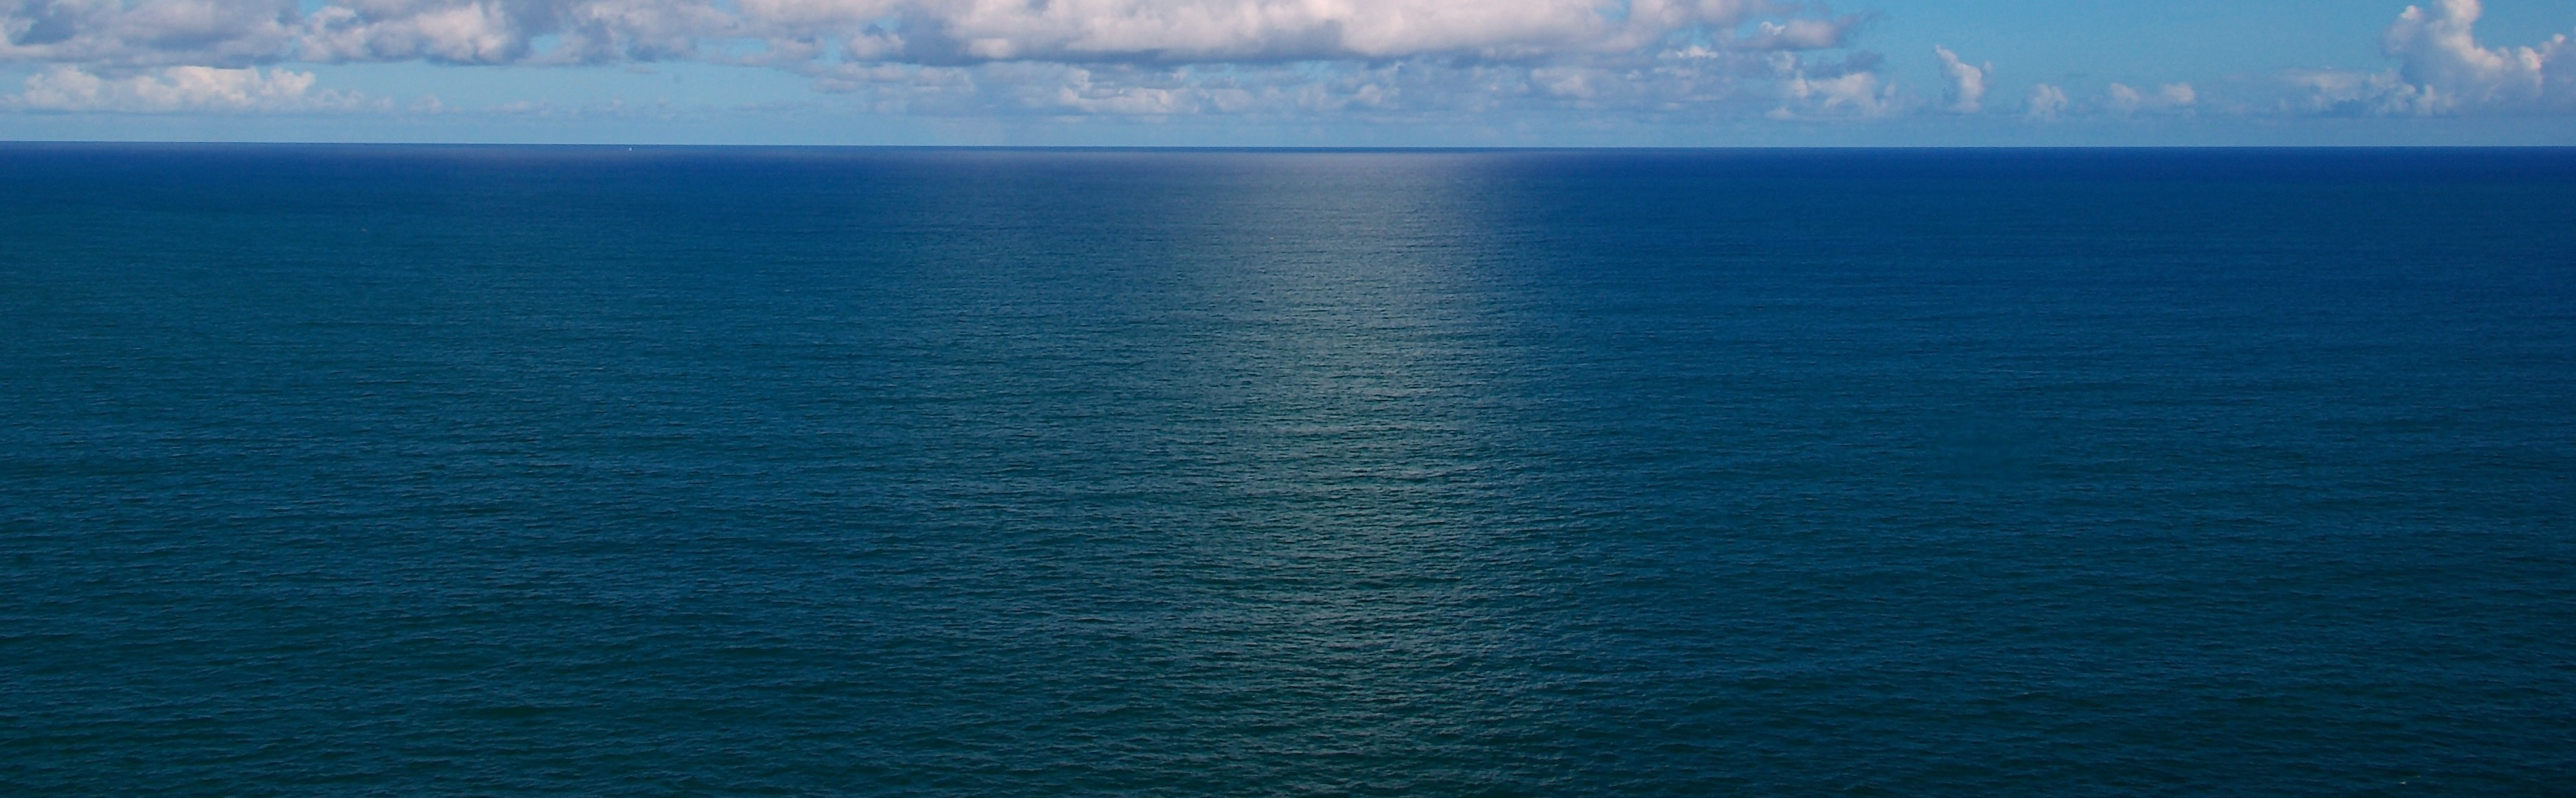 8/images/not/Clouds_over_the_Atlantic_Ocean_cropped.jpg